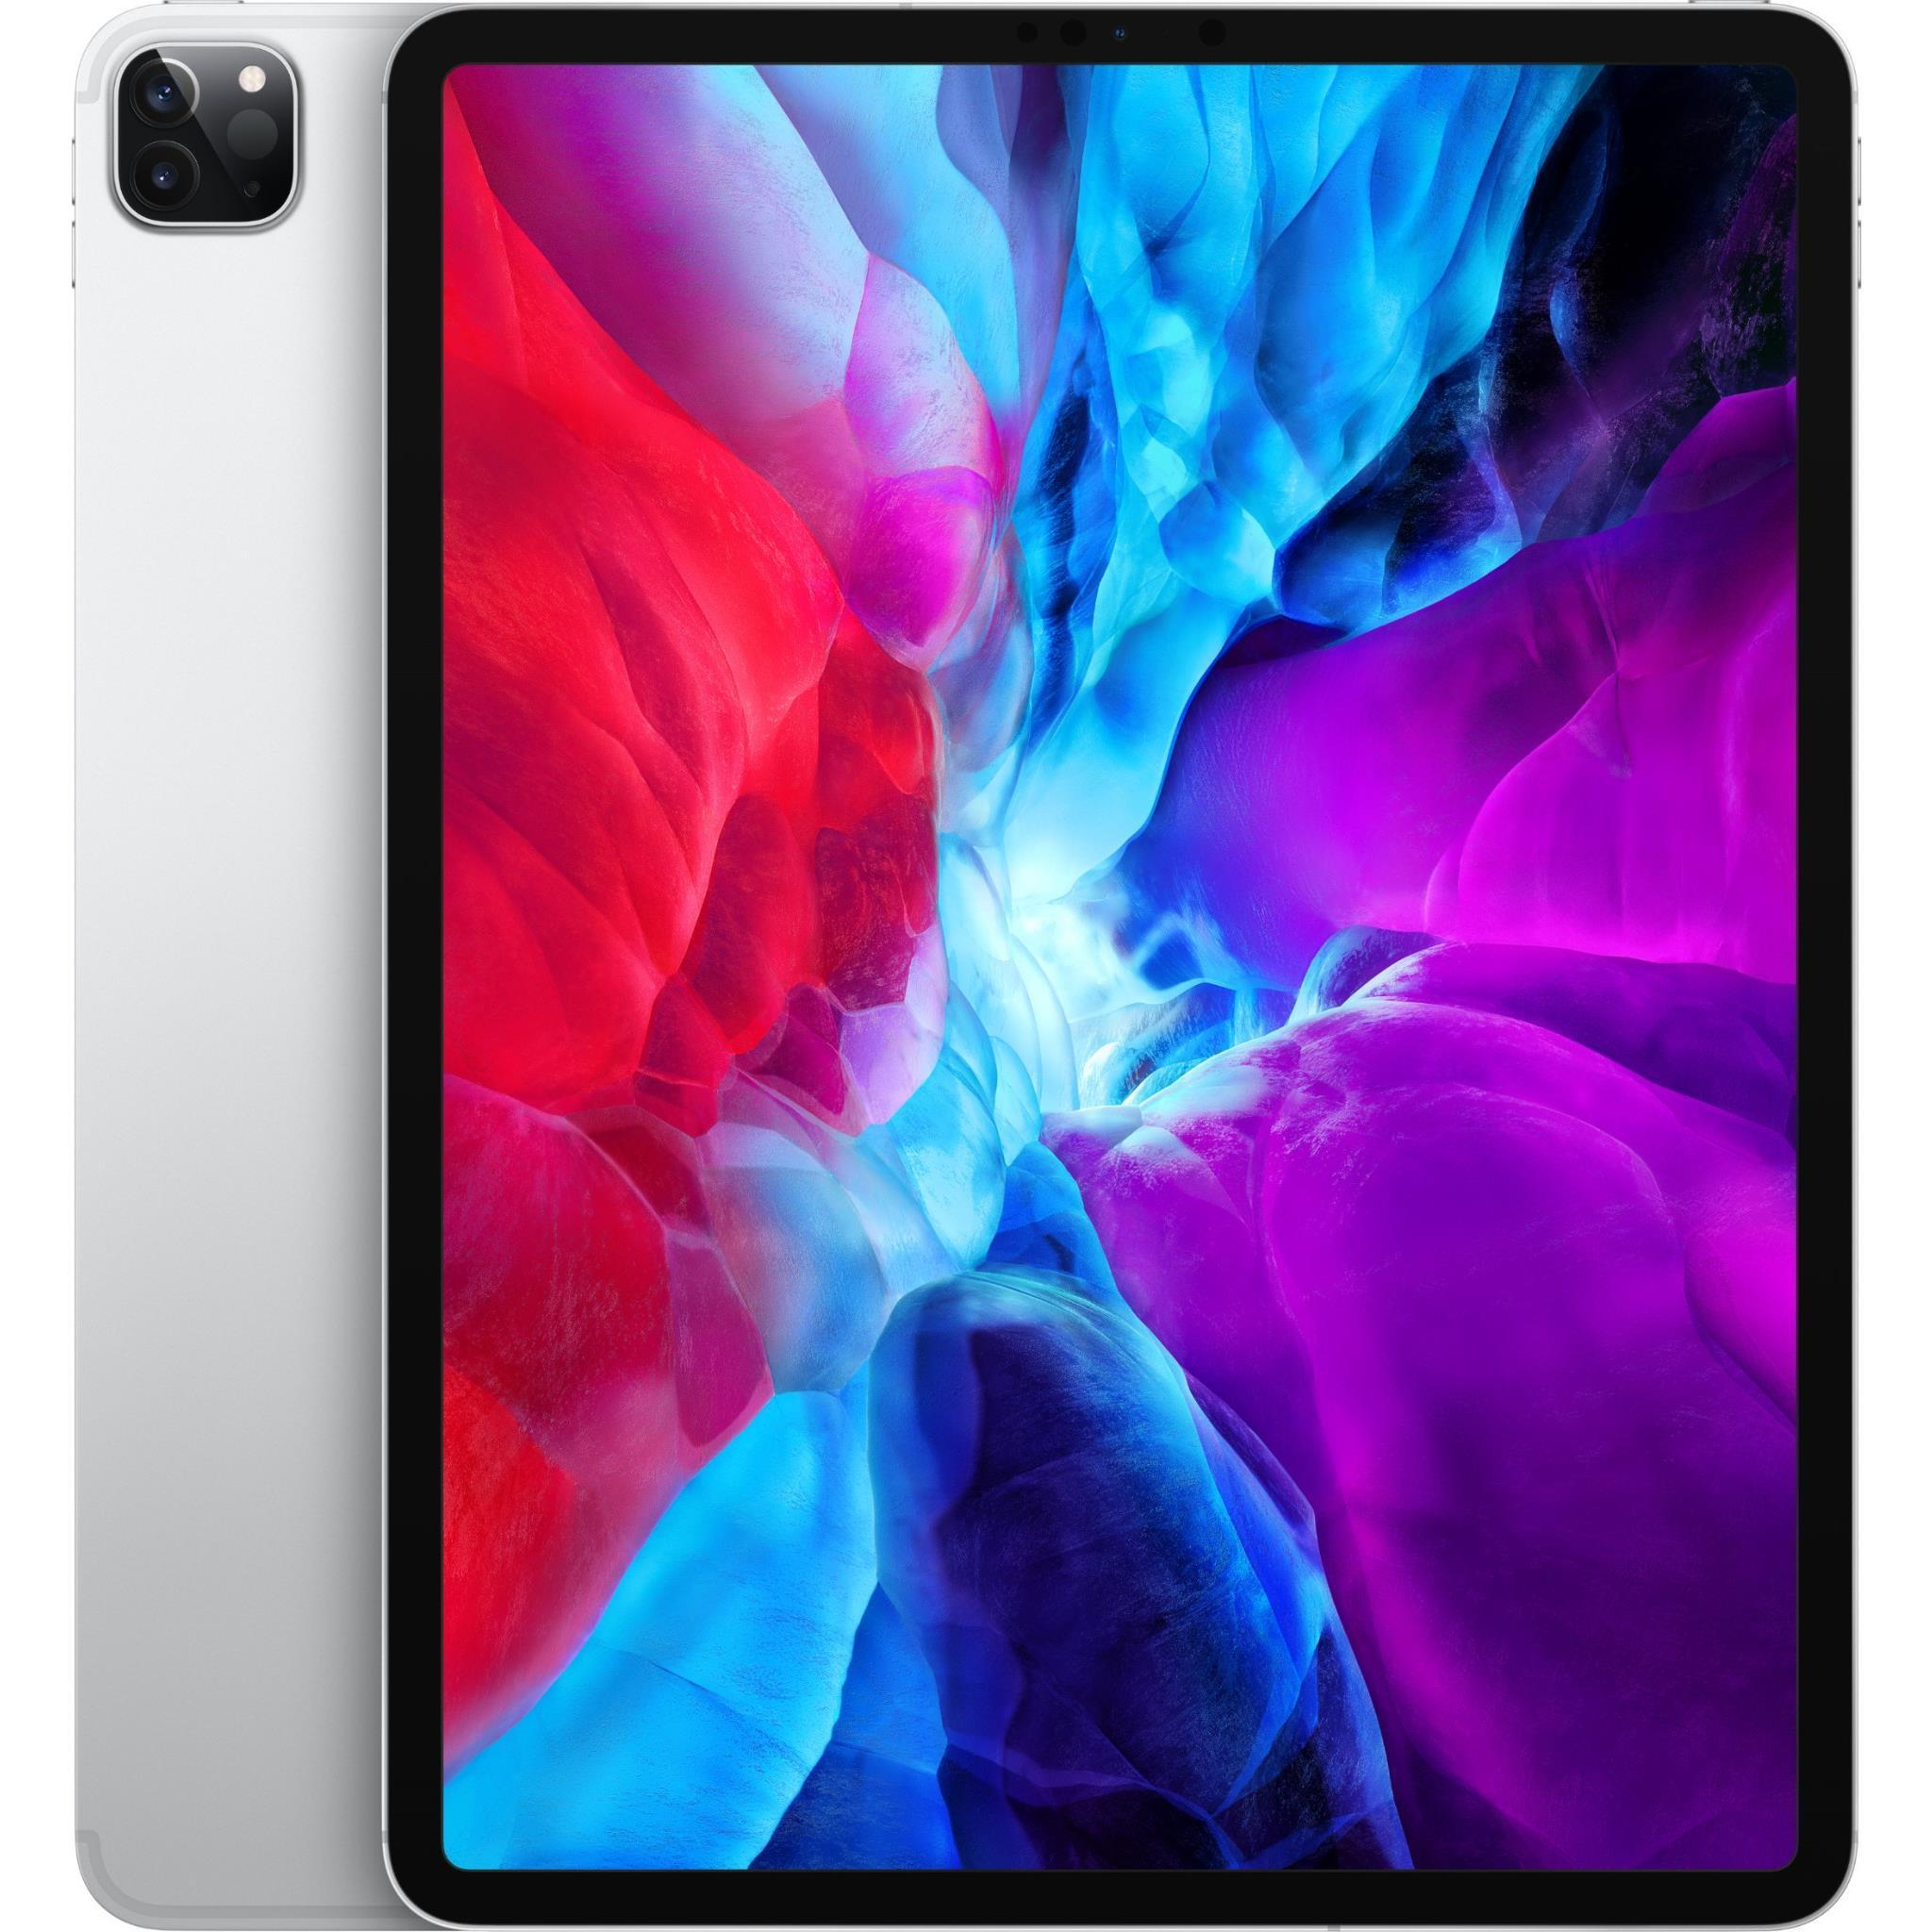 Apple iPad Pro 12.9-inch 512GB Wi-Fi + Cellular (Silver) [2020]